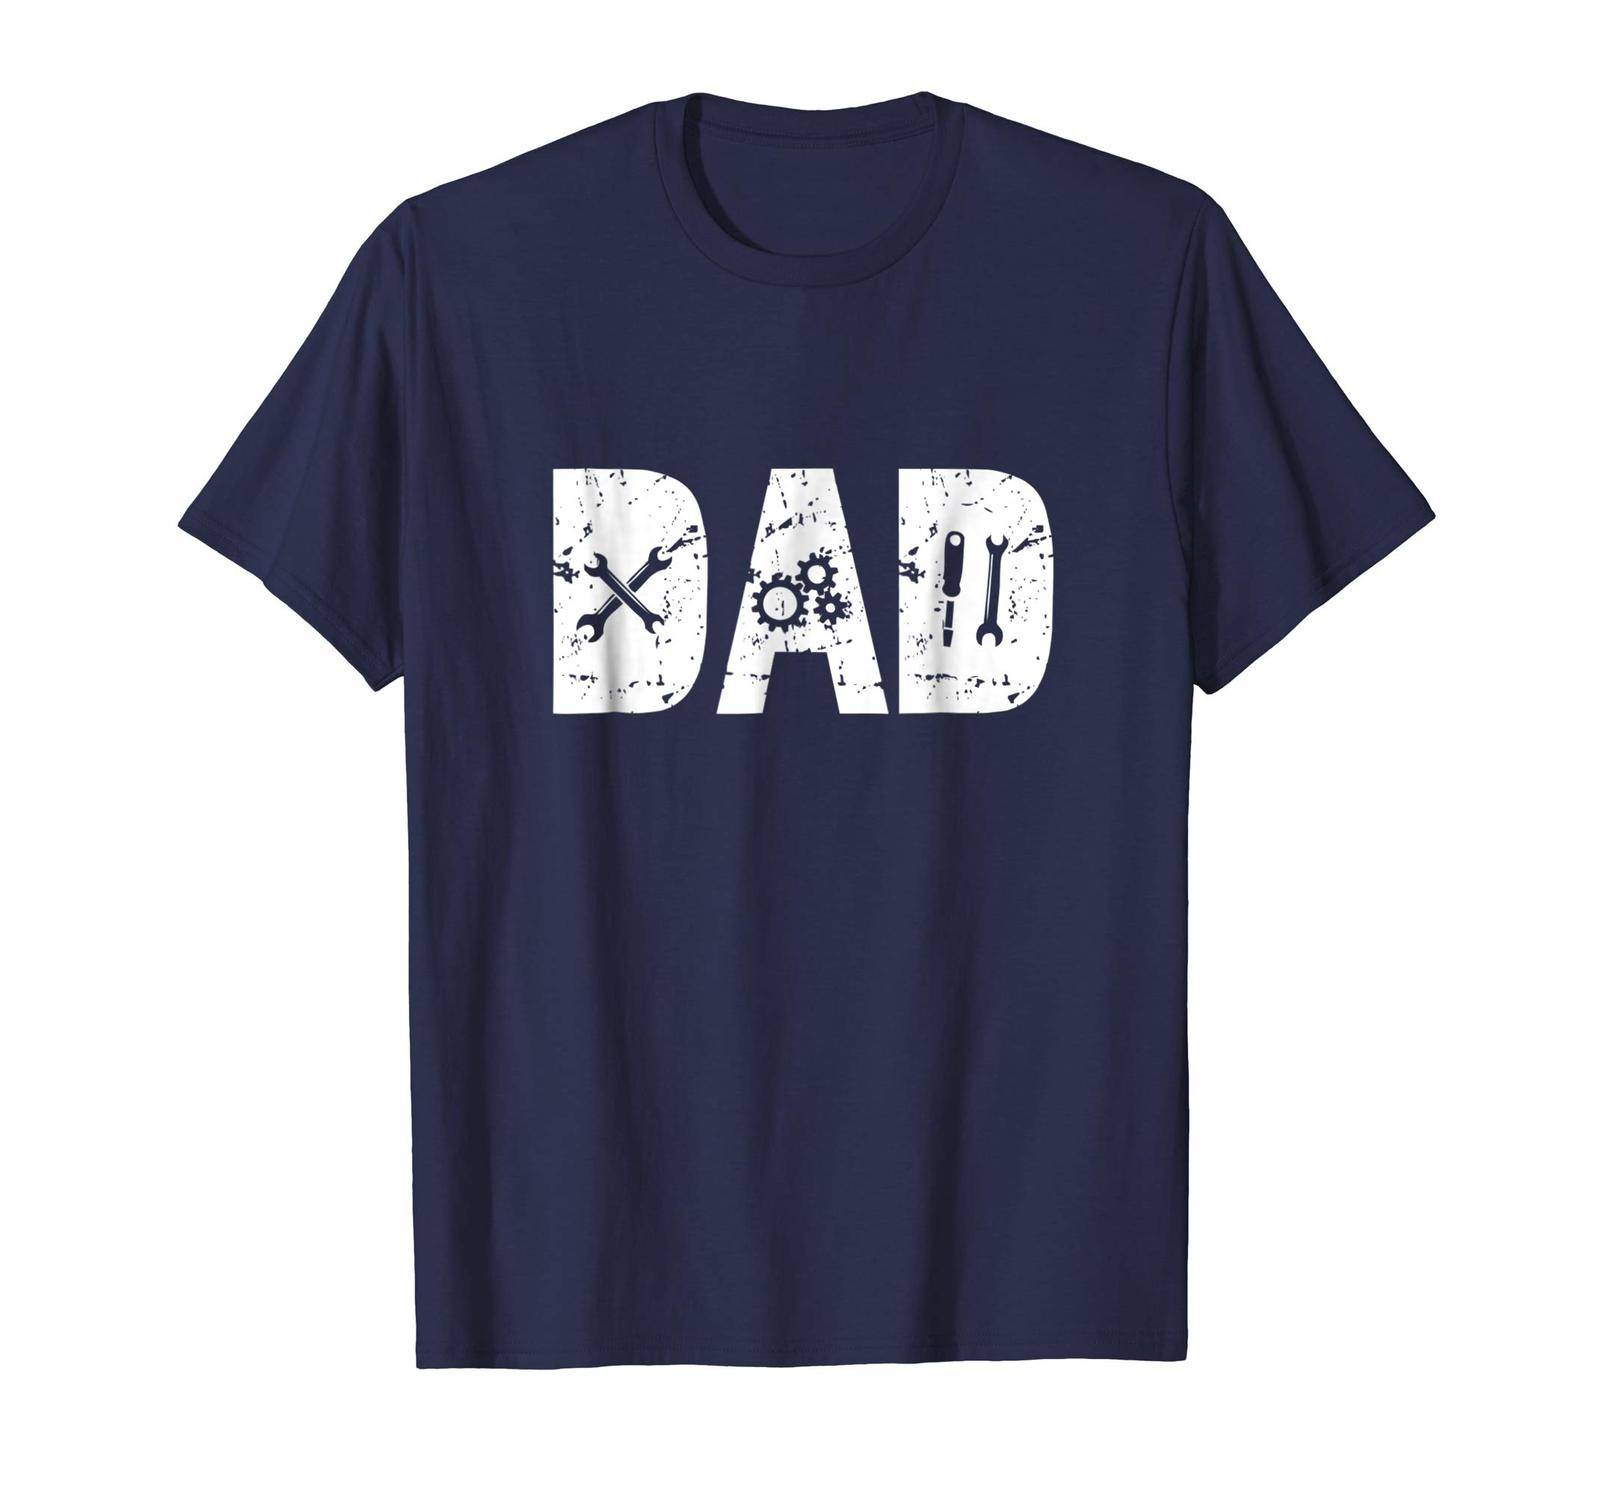 Dad Shirts - Funny Dad Gift Mechanic Shirts for Men Fathers Day 2018 Tee Men image 1